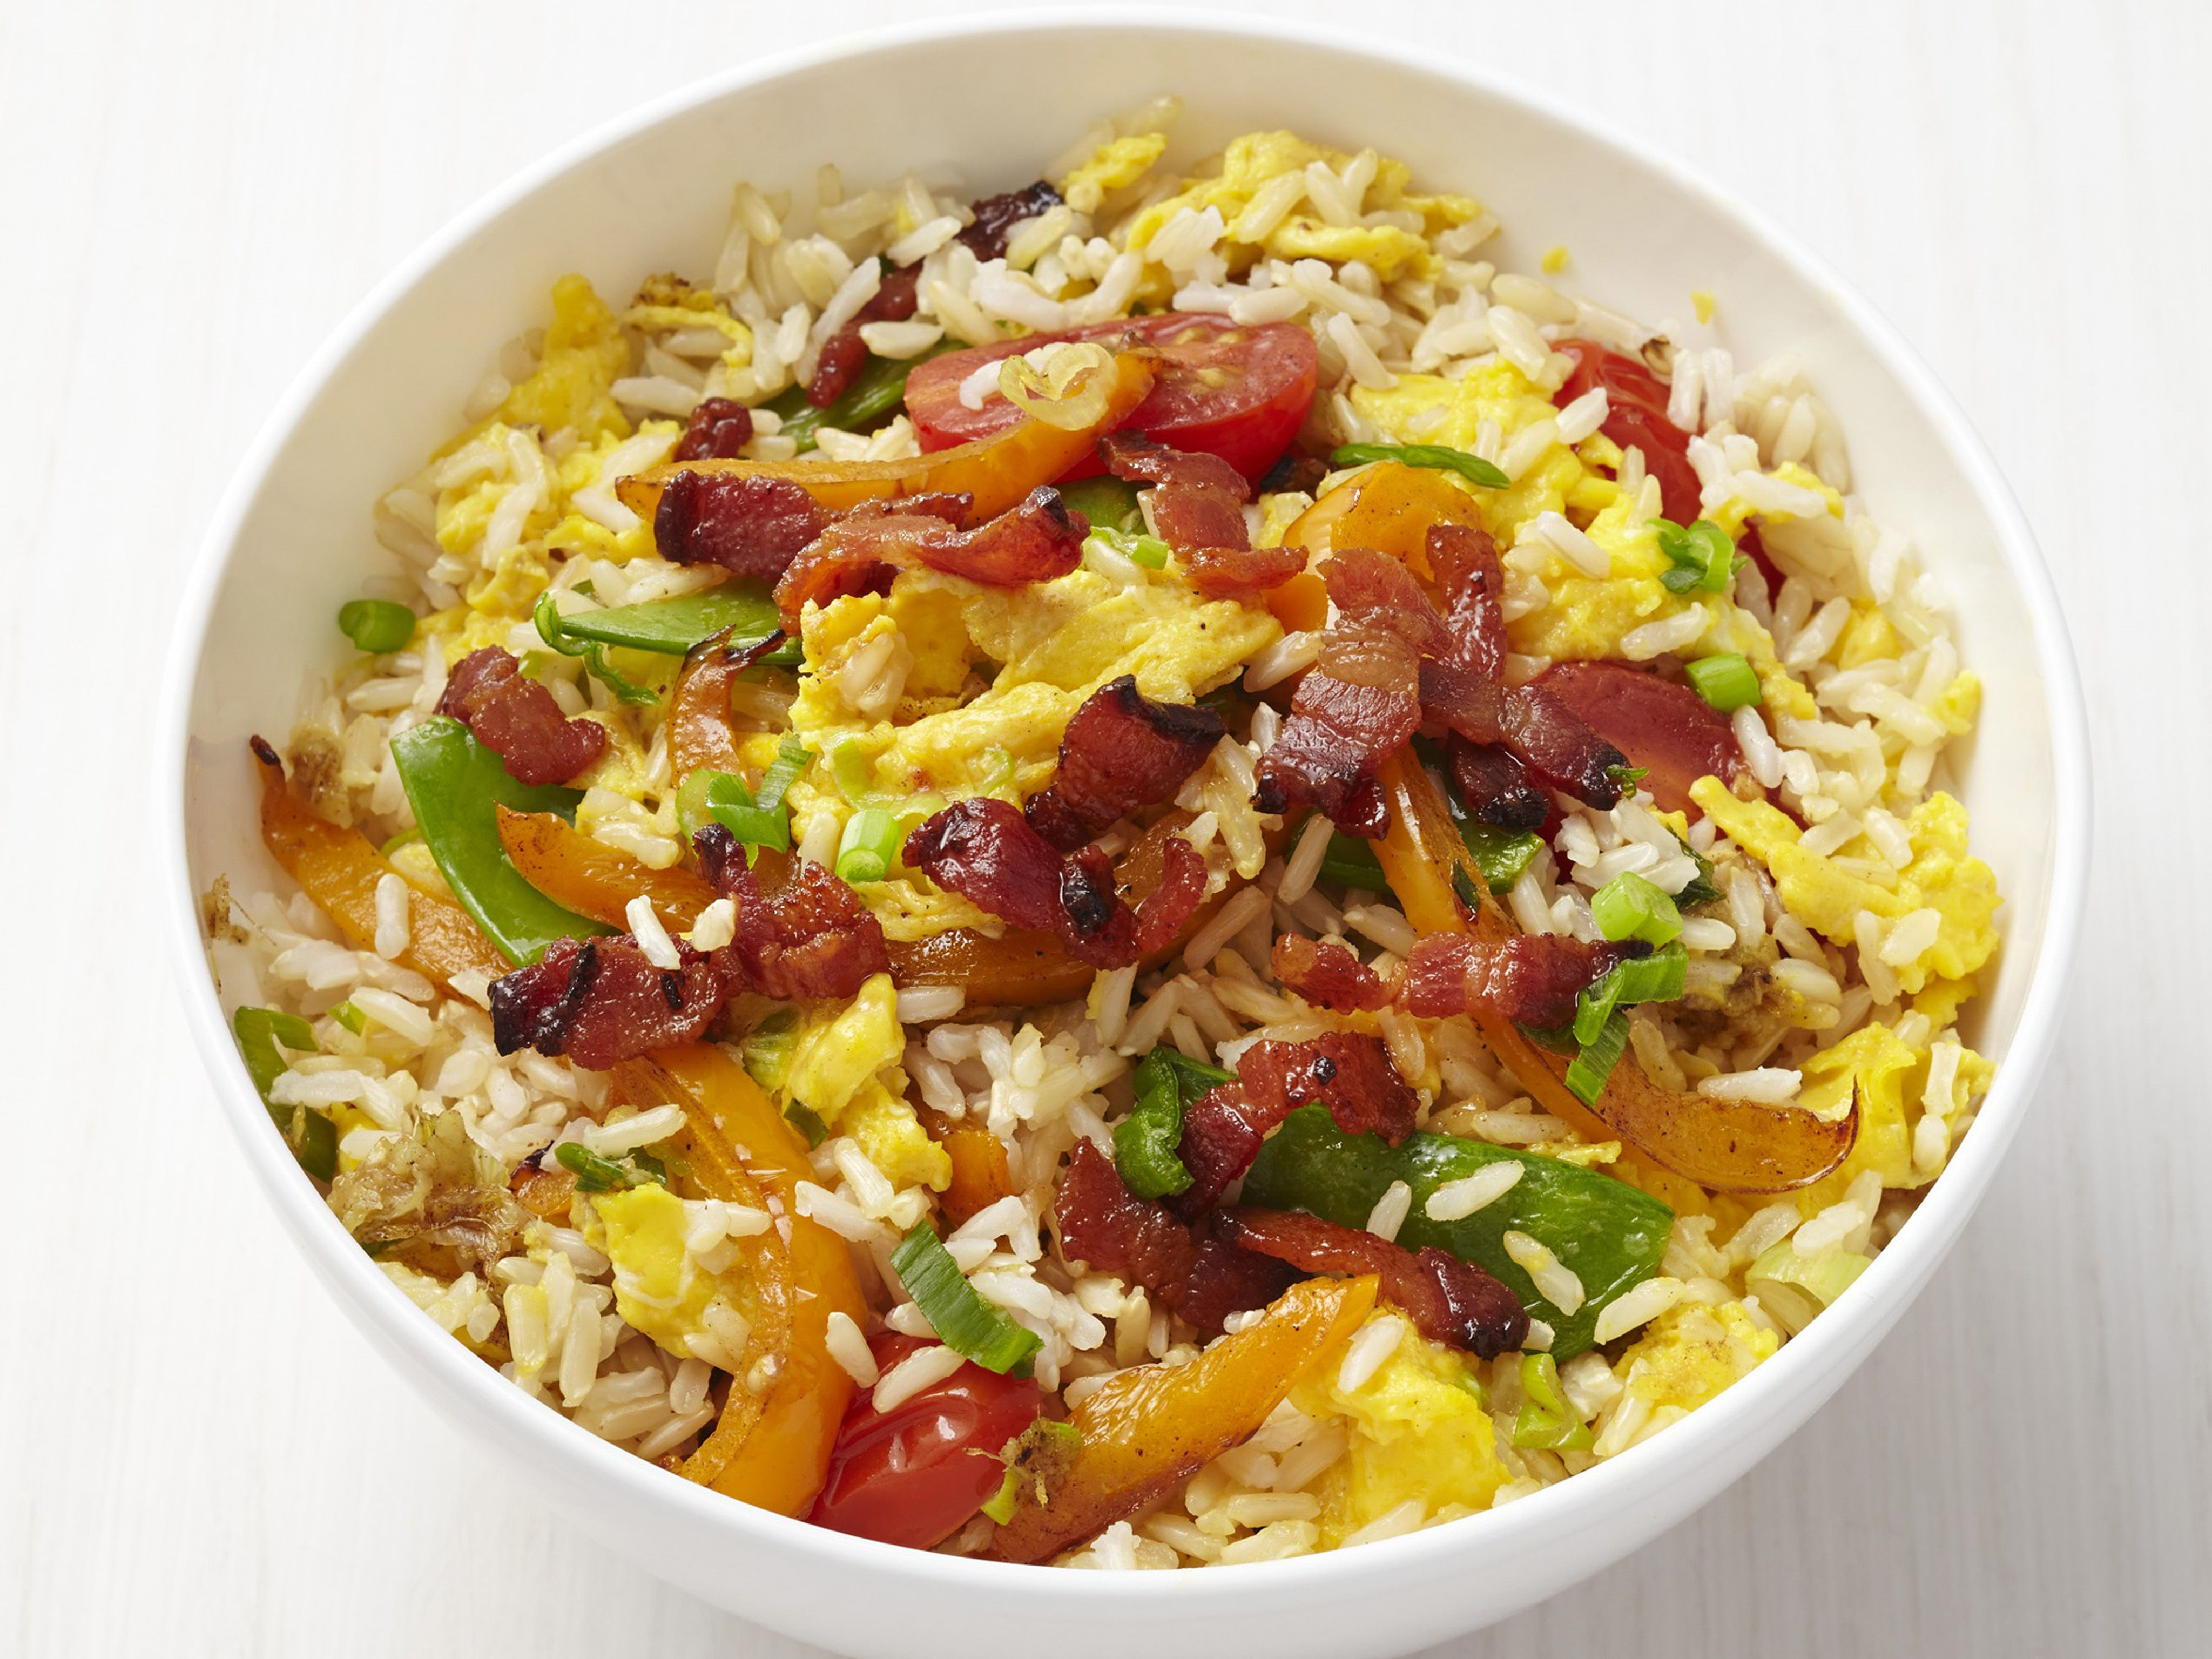 Fried rice with bacon recipe bacon recipes fried rice and bacon fried rice with bacon bacon foodbacon recipesstir forumfinder Gallery